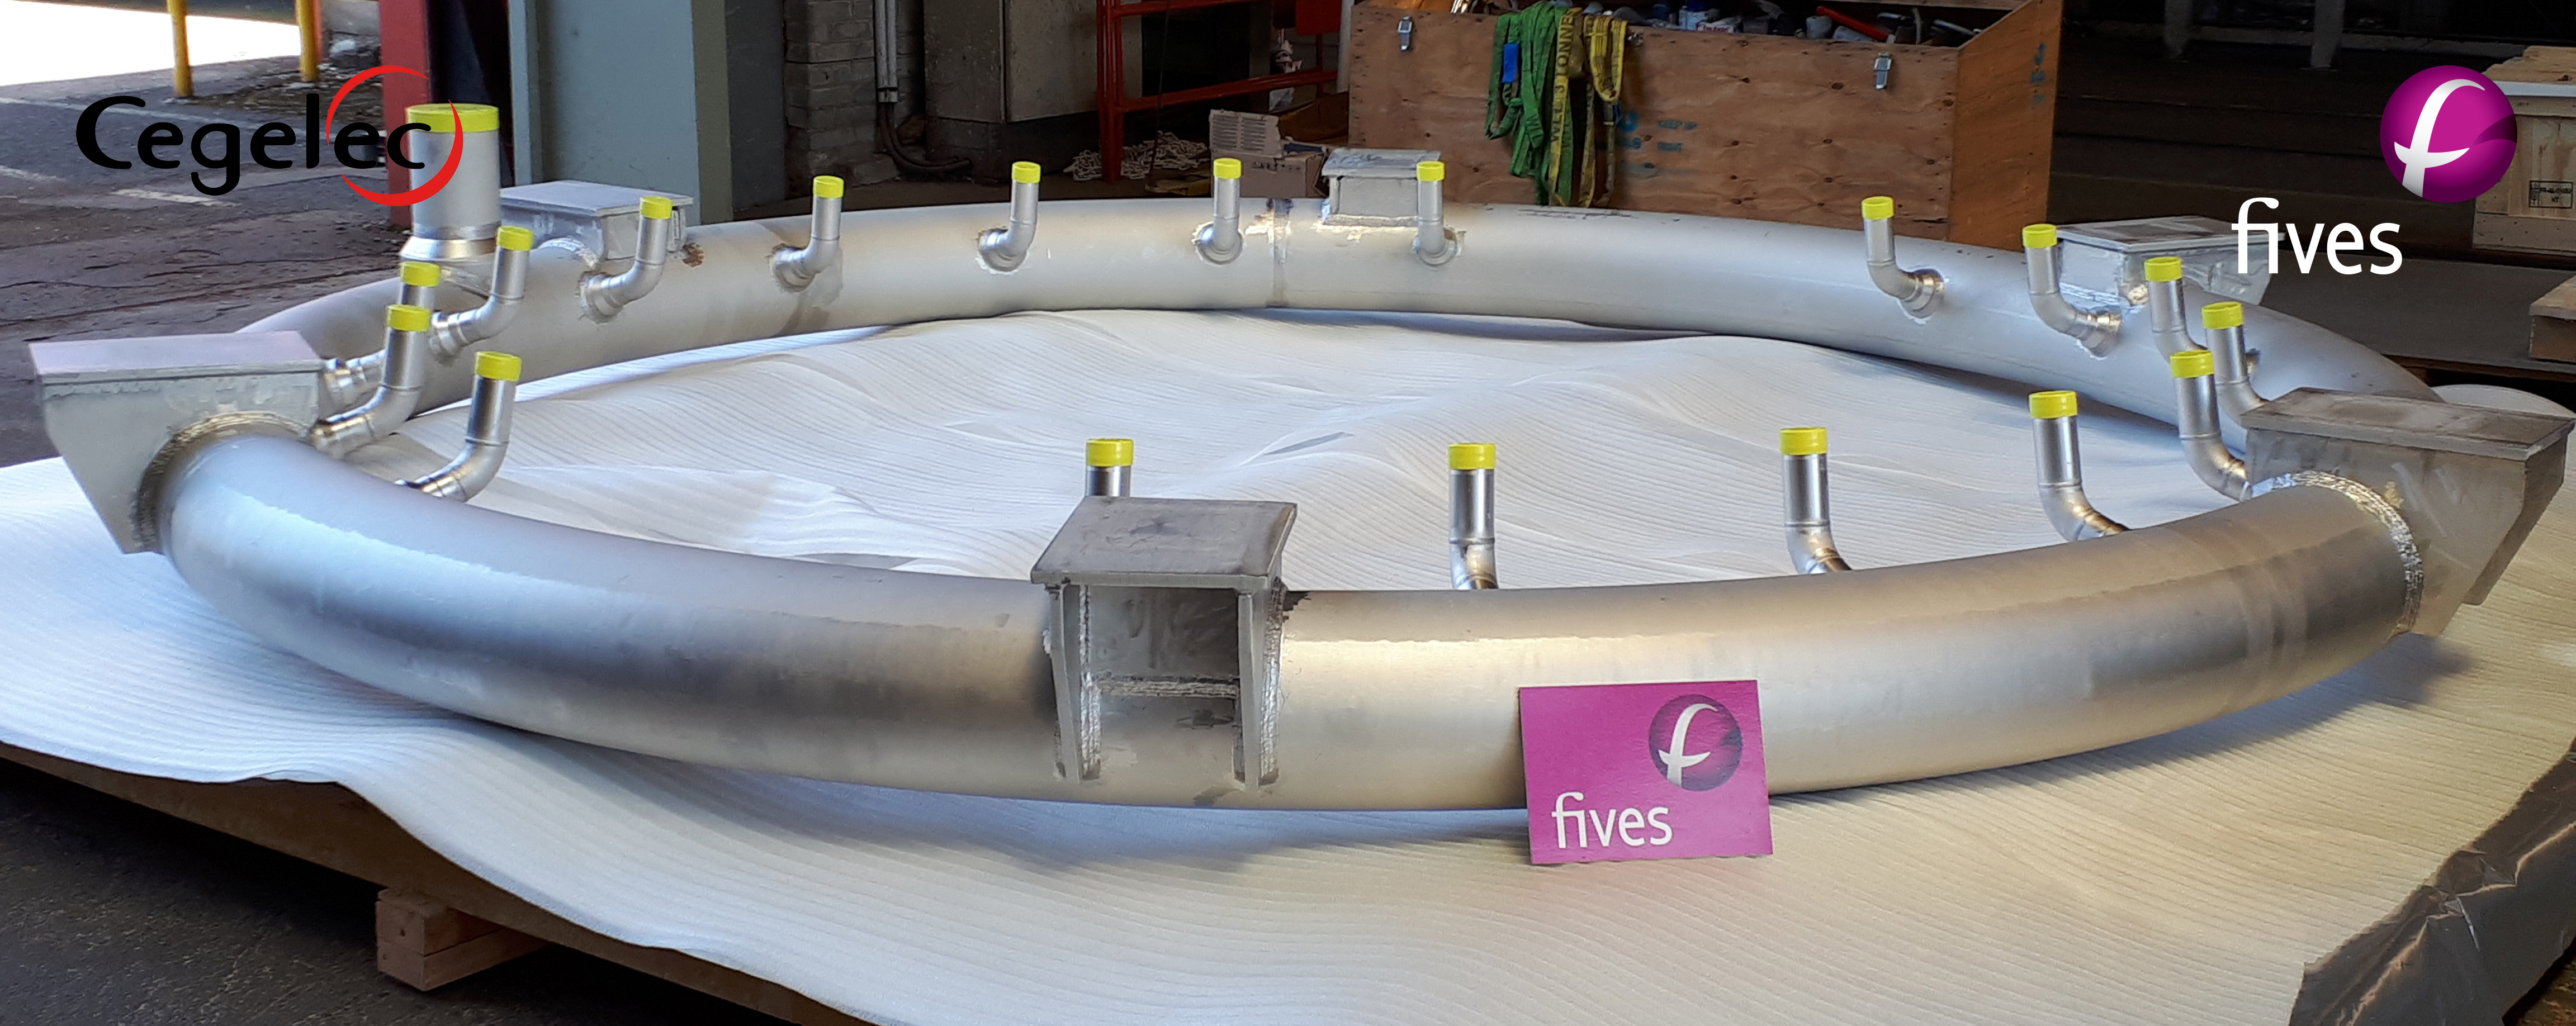 Fives Nordon Tore Ariane 6-FIVES